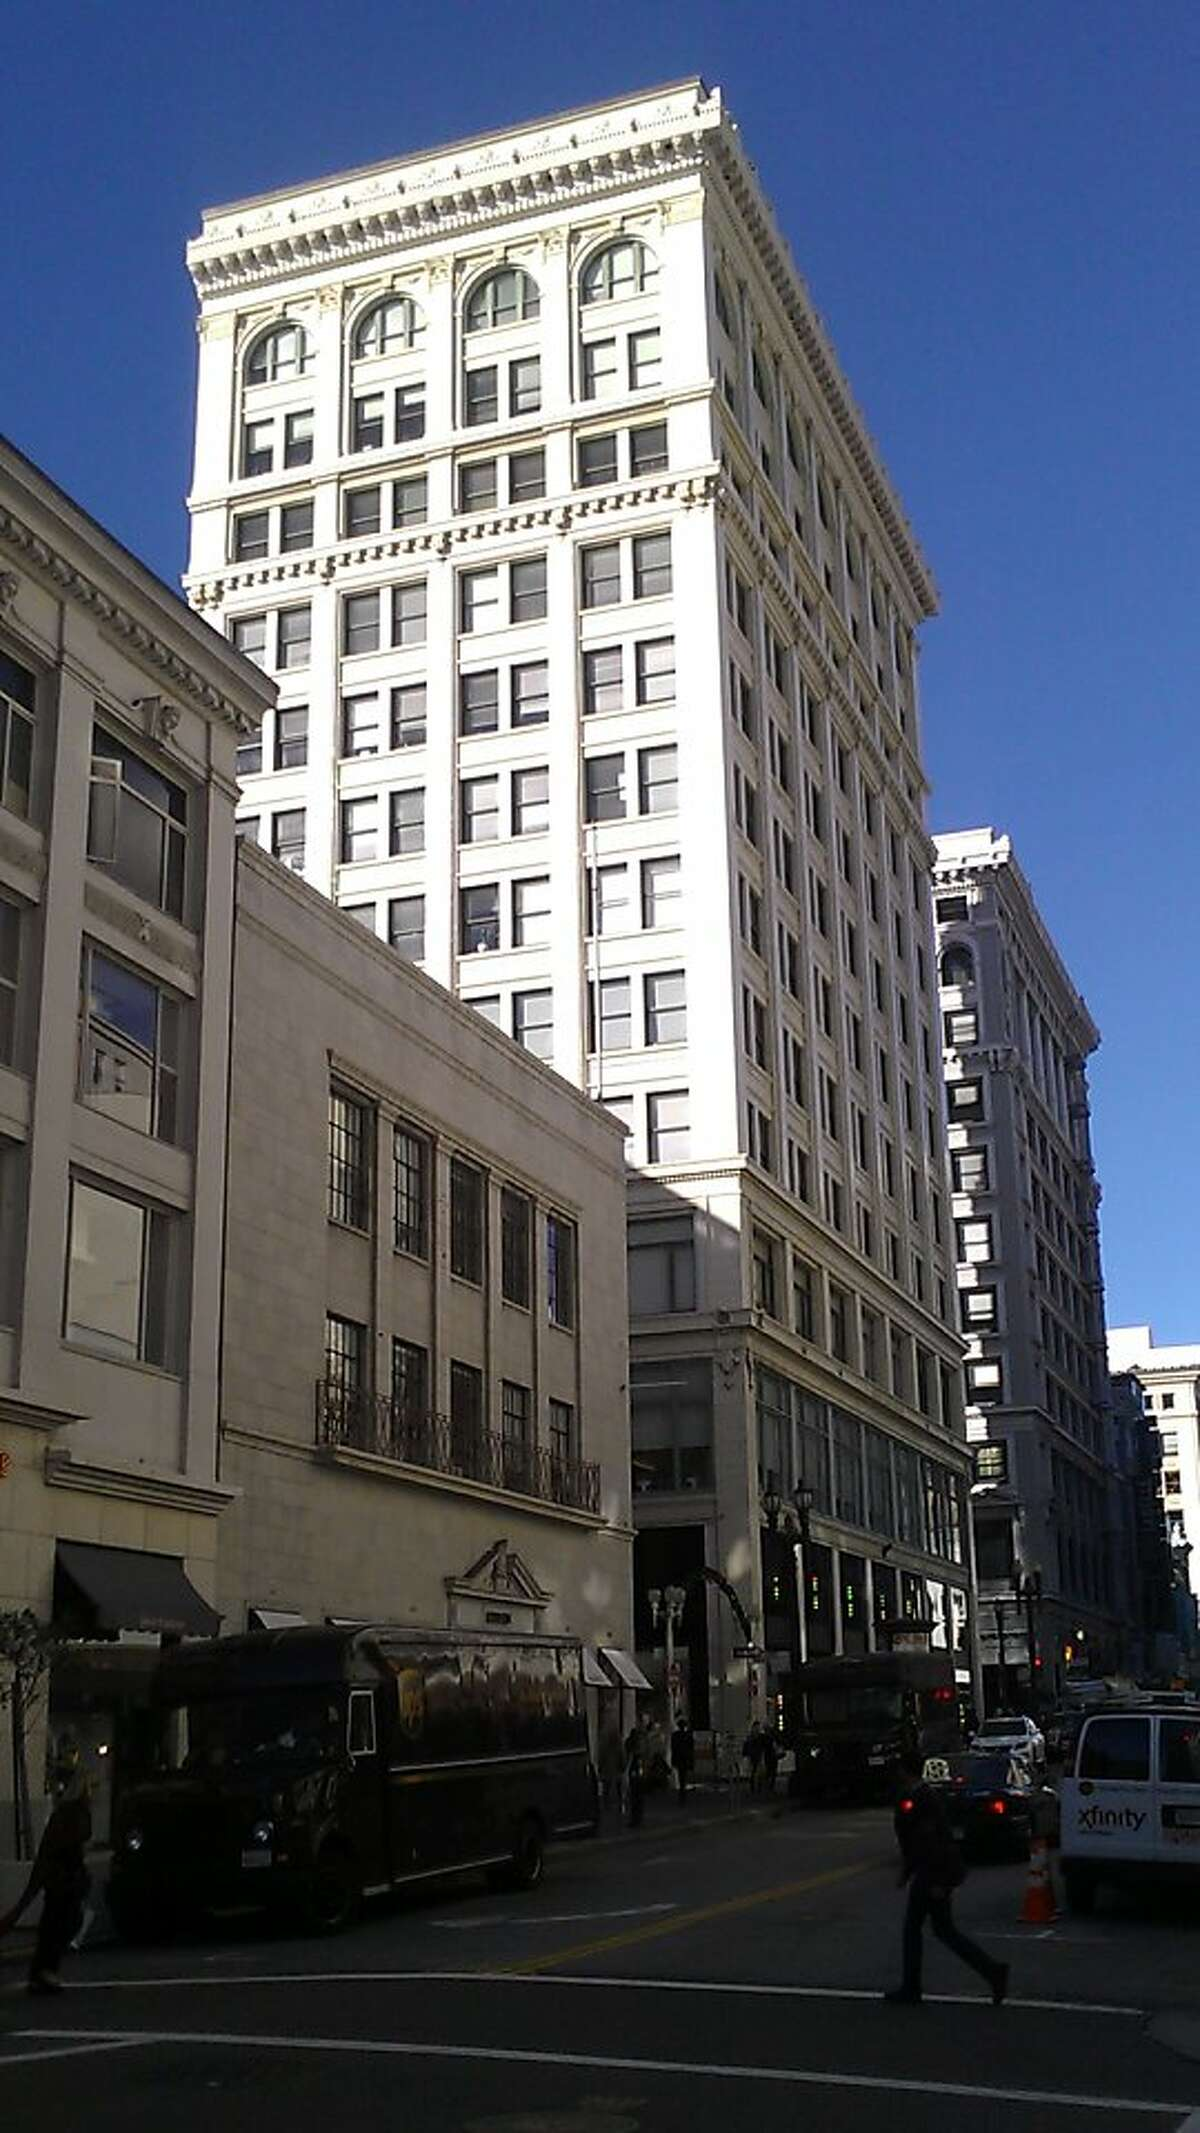 The 12-story building at 201 Post St., one block from Union Square, was built in 1909 and designed by the firm William Curlett and Sons. Prada has been the ground-floor tenant since 2008.